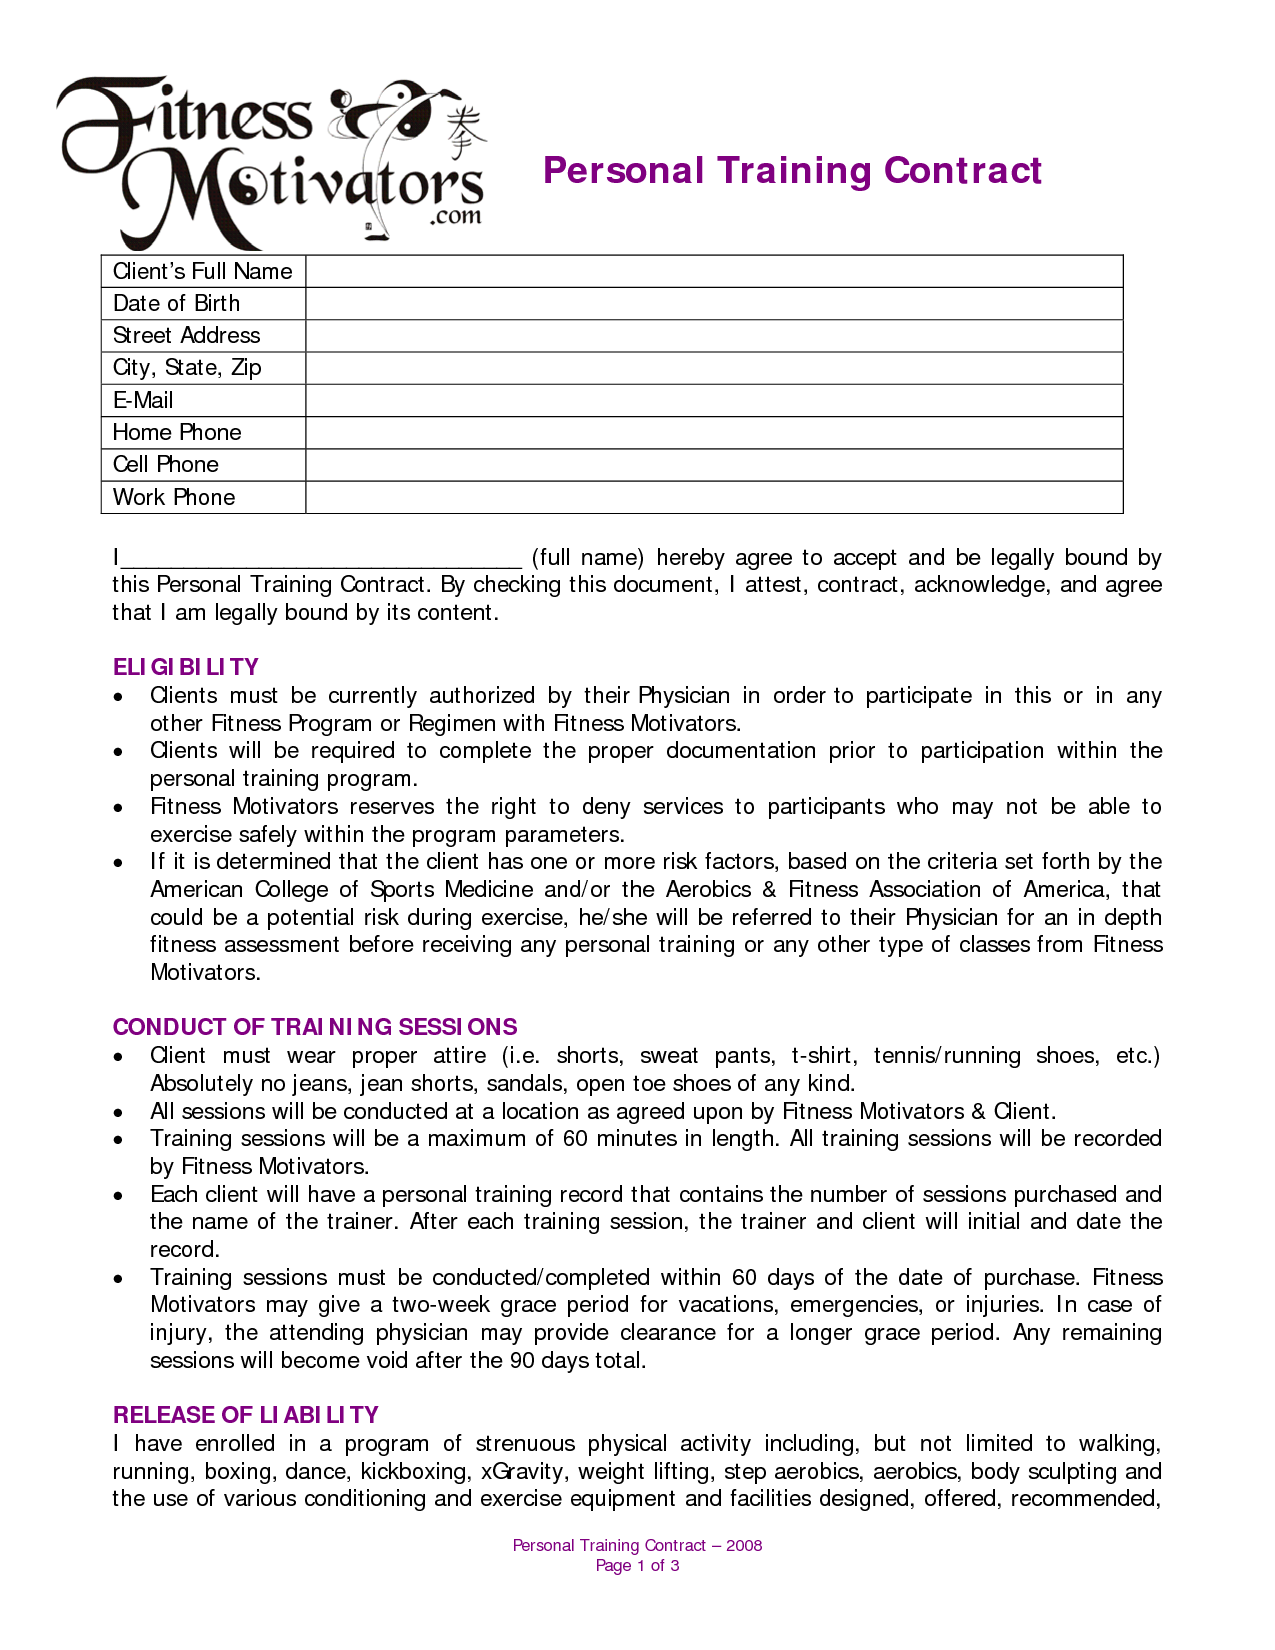 personal training agreement